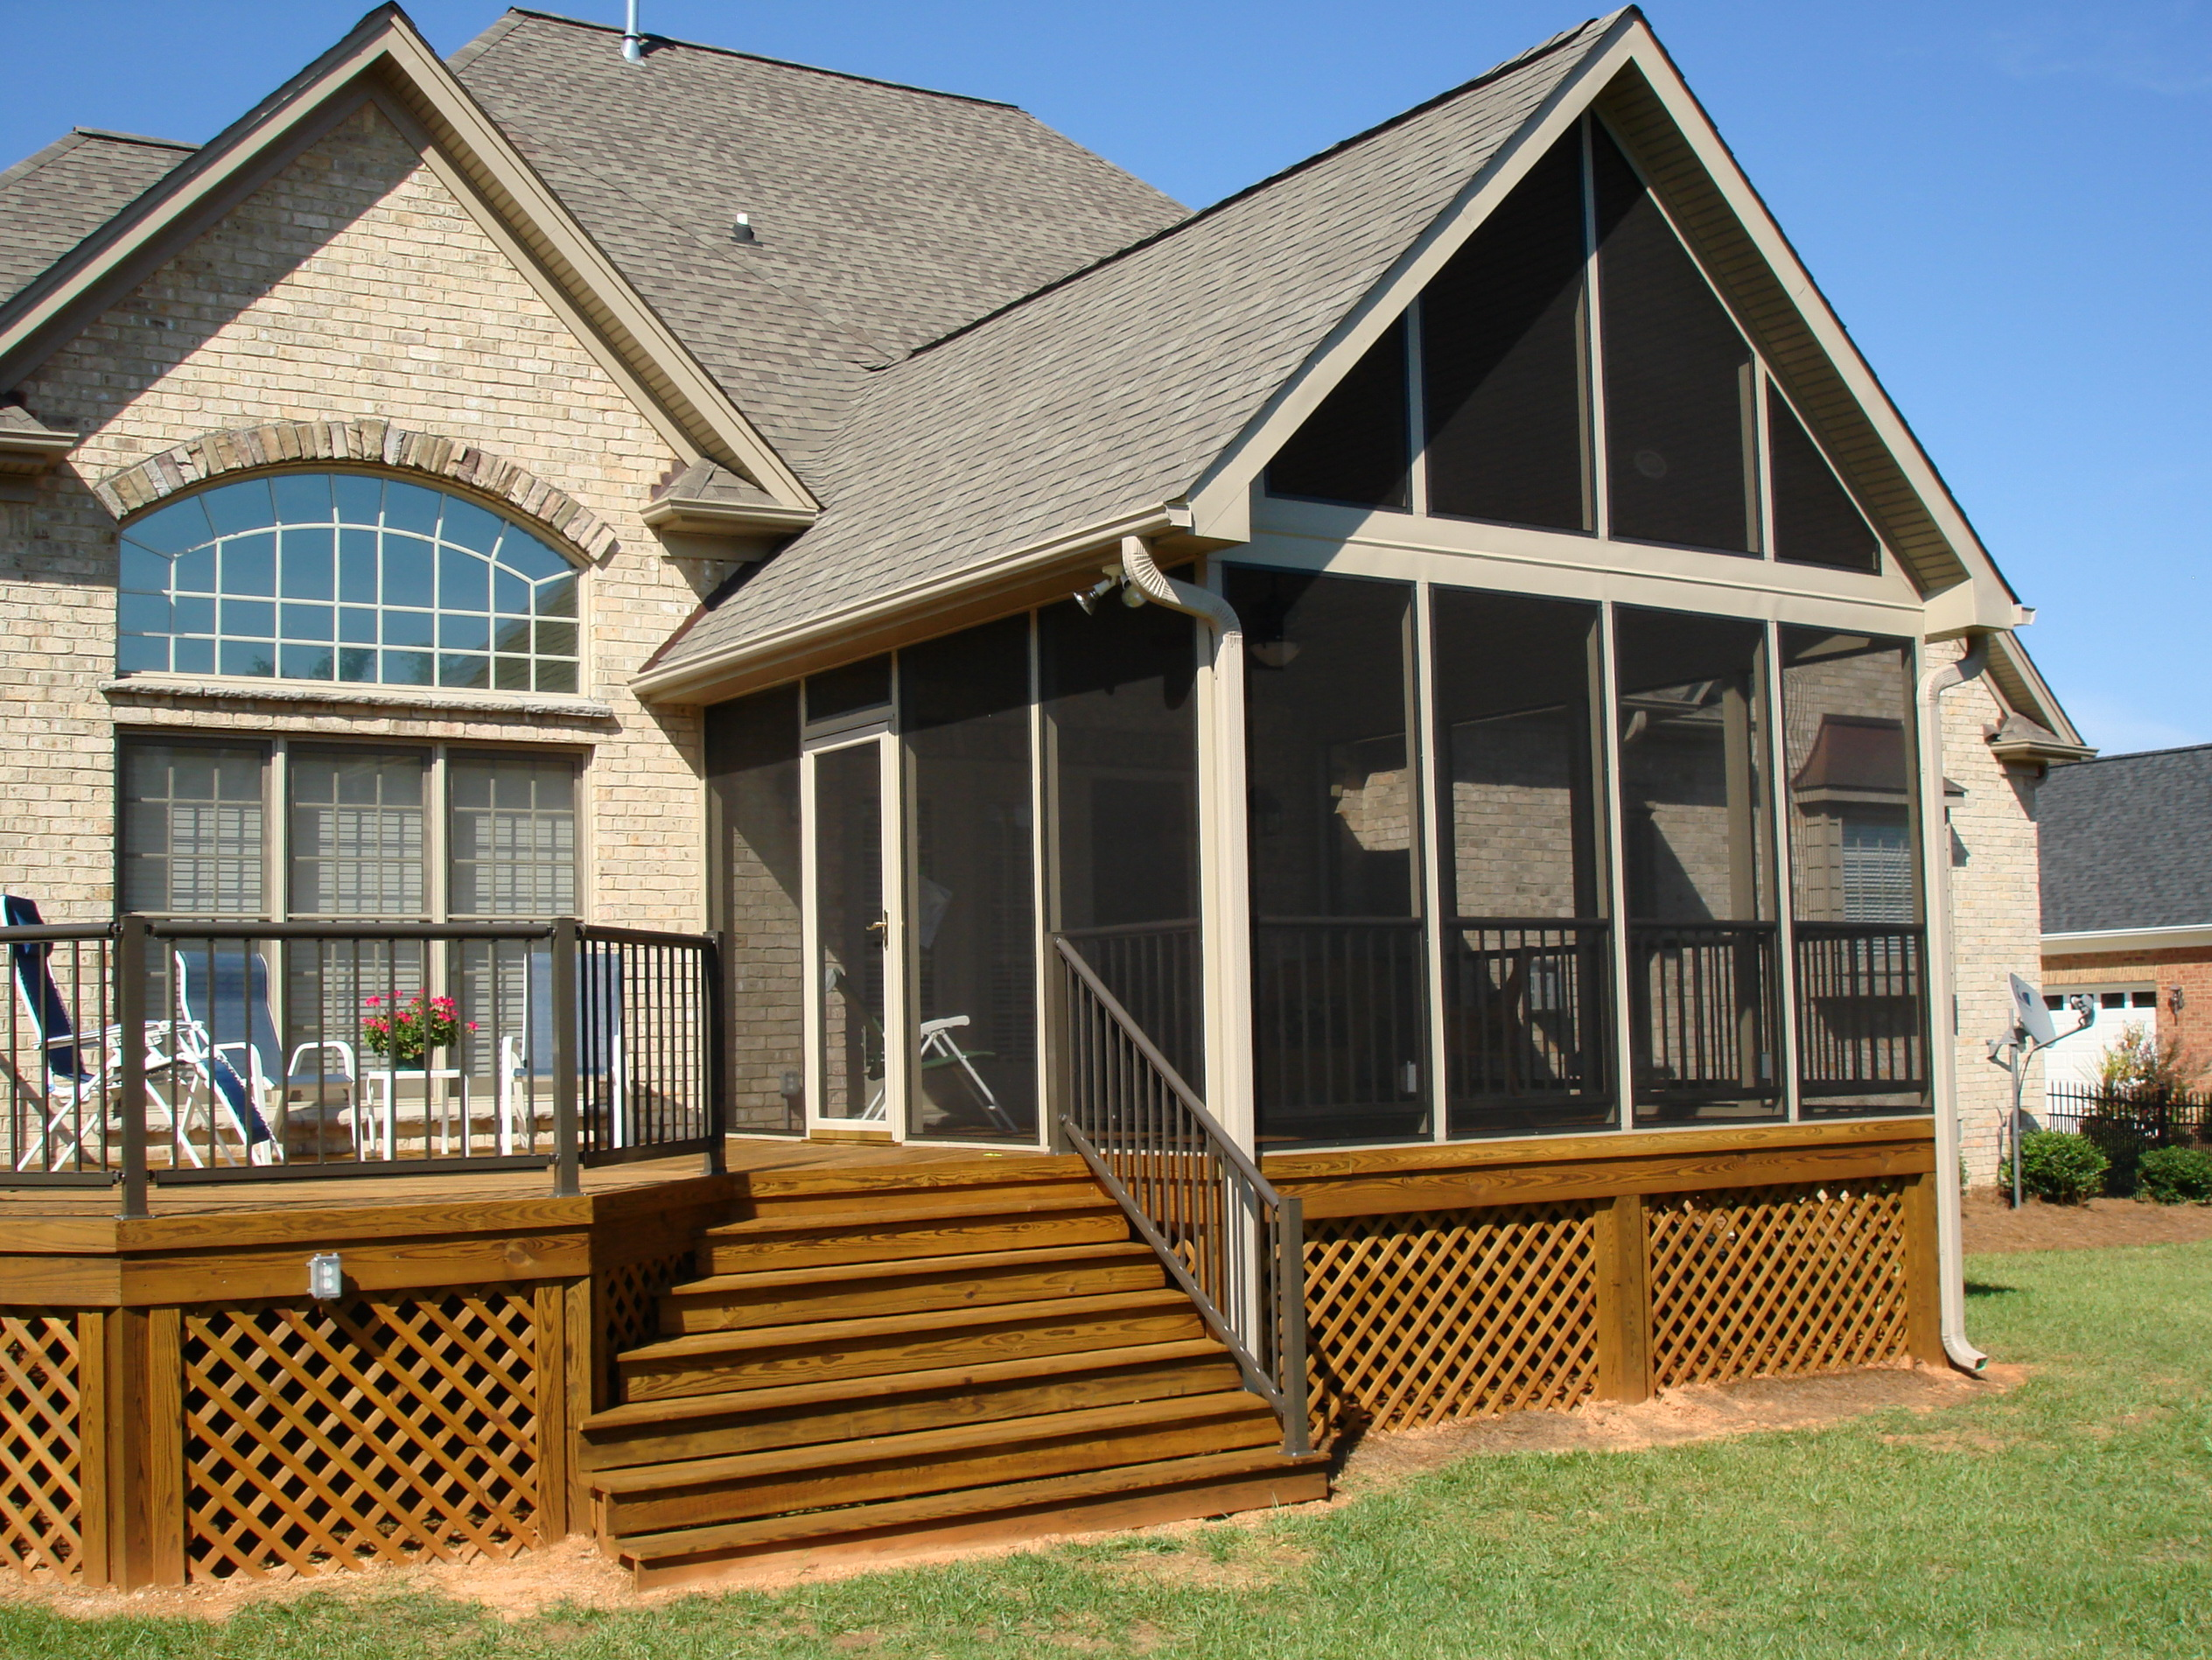 Screened in porch ideas for mobile homes home design ideas for Adding a garage to a modular home